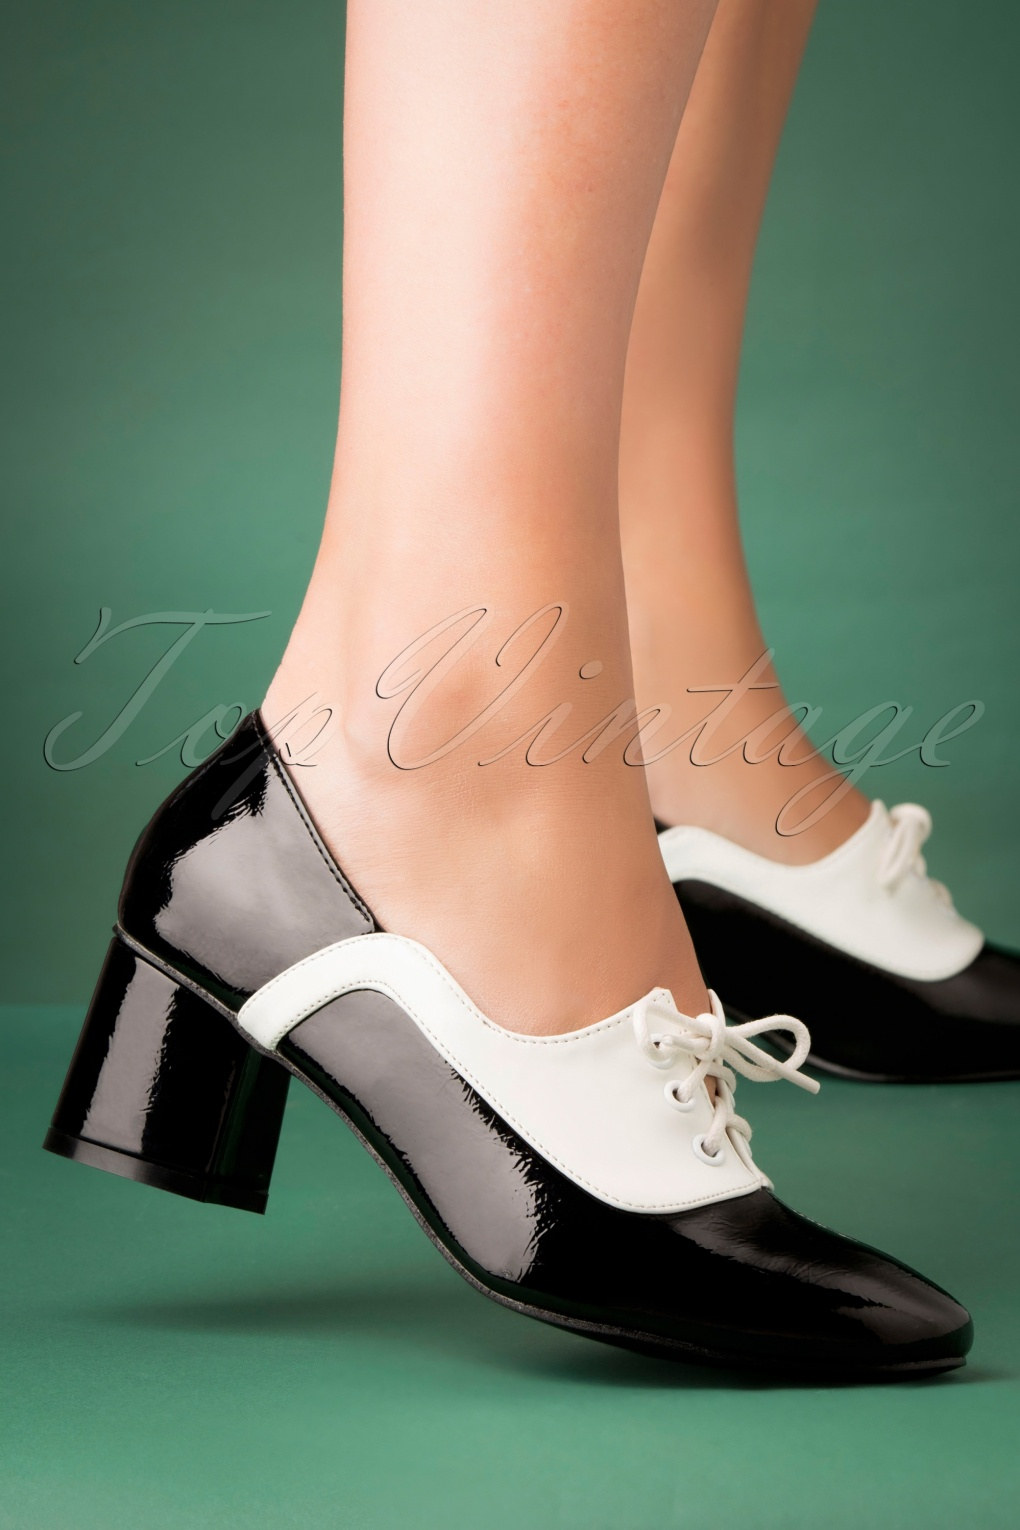 Vintage Heels, Retro Heels, Pumps, Shoes 60s The Modernist Two Tone Lace Shoes in Black and White £48.42 AT vintagedancer.com